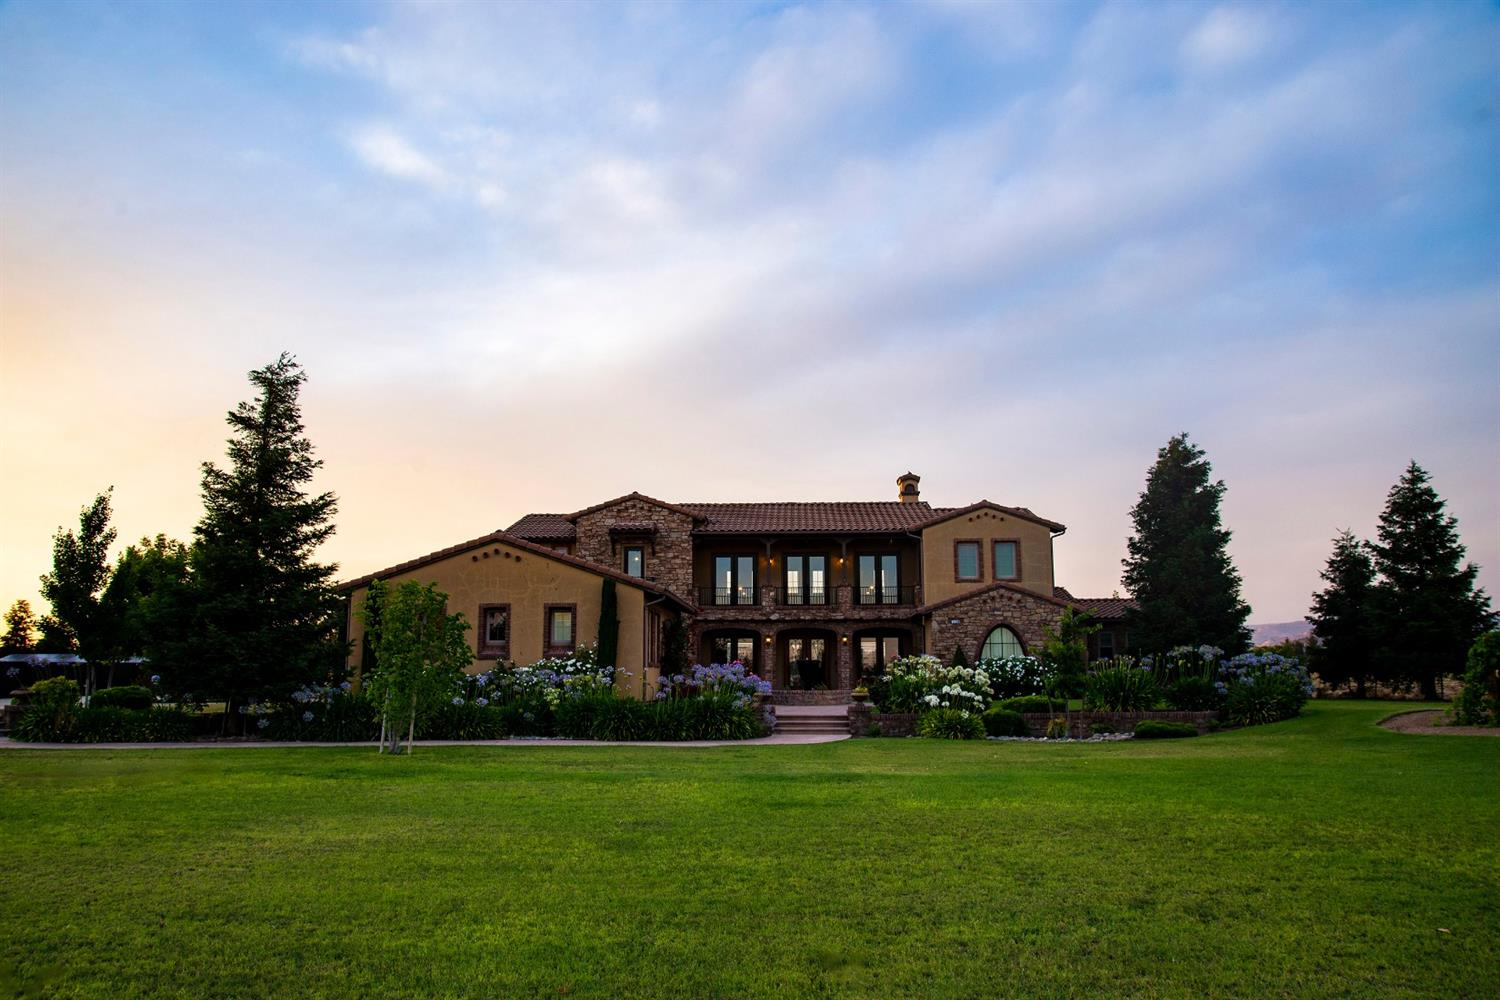 Quality, luxury, taste, and spacious style abound! This home is an entertainers dream! Custom Tuscan style home built with attention to detail by owner /contractor on 2 acres. Every gorgeous detail from the main house to the 783 sf office/ guest casita to the 1200 sf(48x25), outbuilding/ shop with pull through door system is beautifully done. An 8.1kw owned solar system helps everything run to its maximum savings potential. Amenities include, small table grape vineyard, one hole golf course, fully landscaped property, childrens play area. 3000 gallon water storage tank and submerged well pump and propane tank. A virtual feast for all of your senses this property is awesome. Bright spacious rooms, ample storage. Luxury details at every turn. You will  not want to leave this beautiful home.